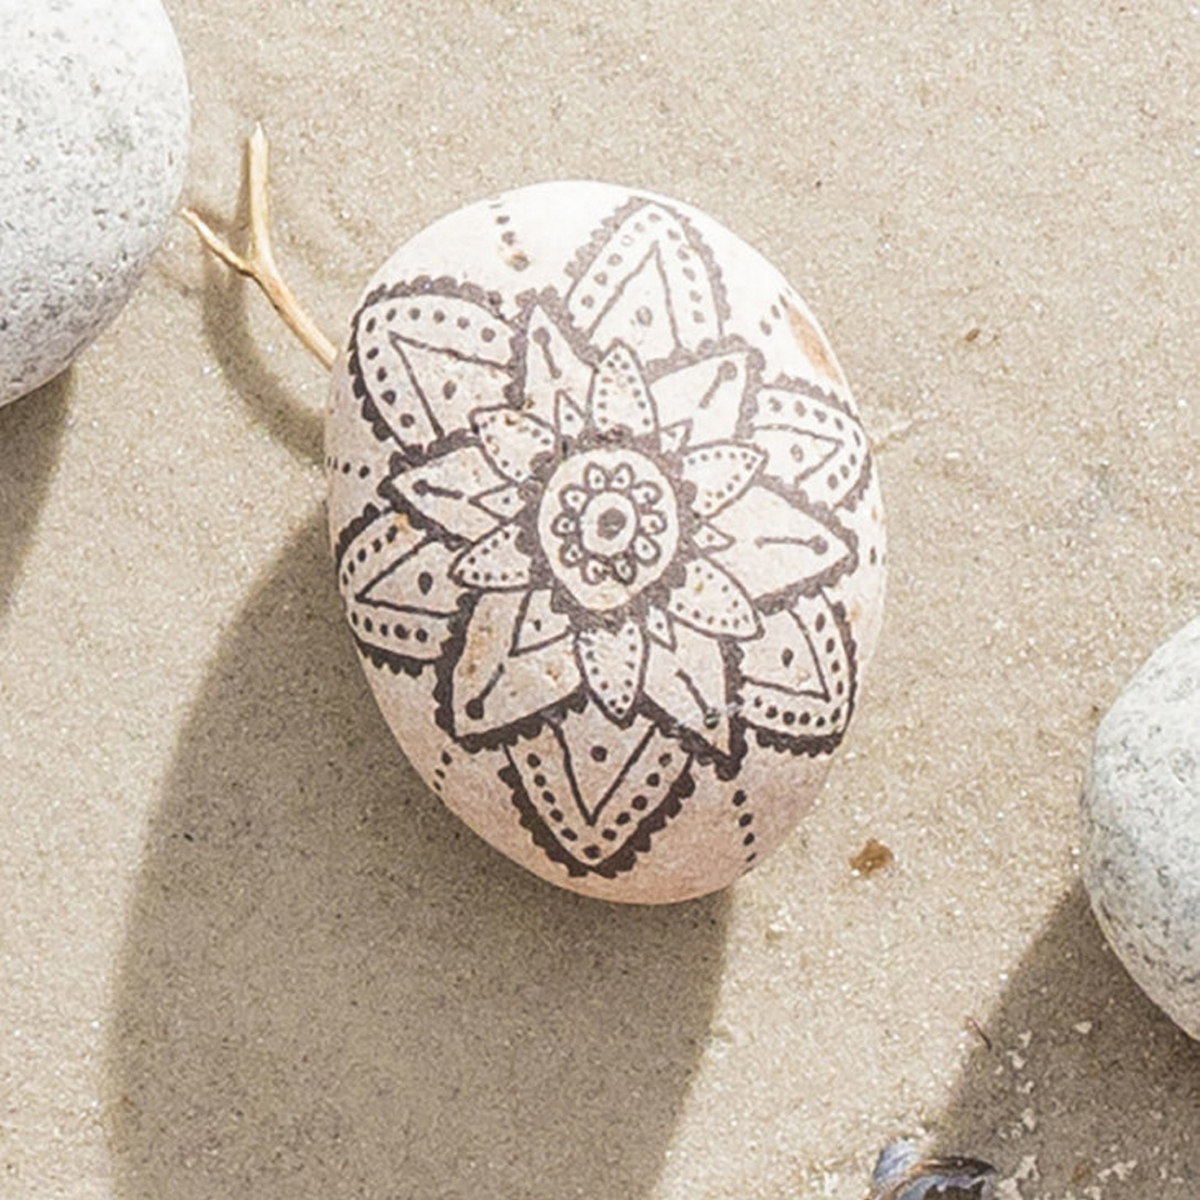 Doodle on stones